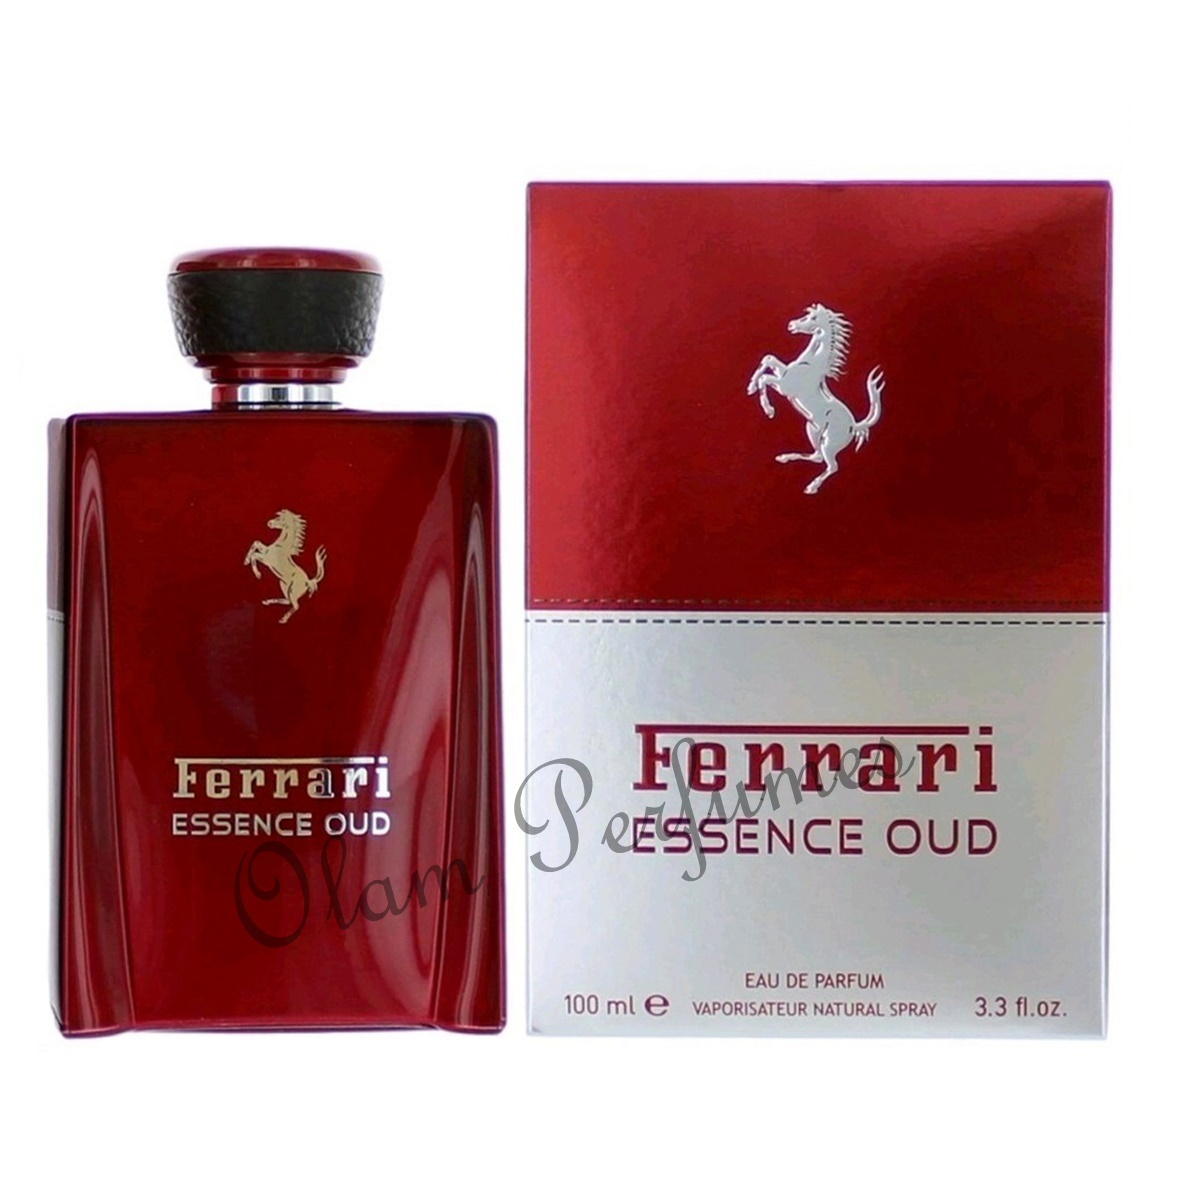 Ferrari Essence Oud Eau de Parfum Spray 3.3oz 100ml